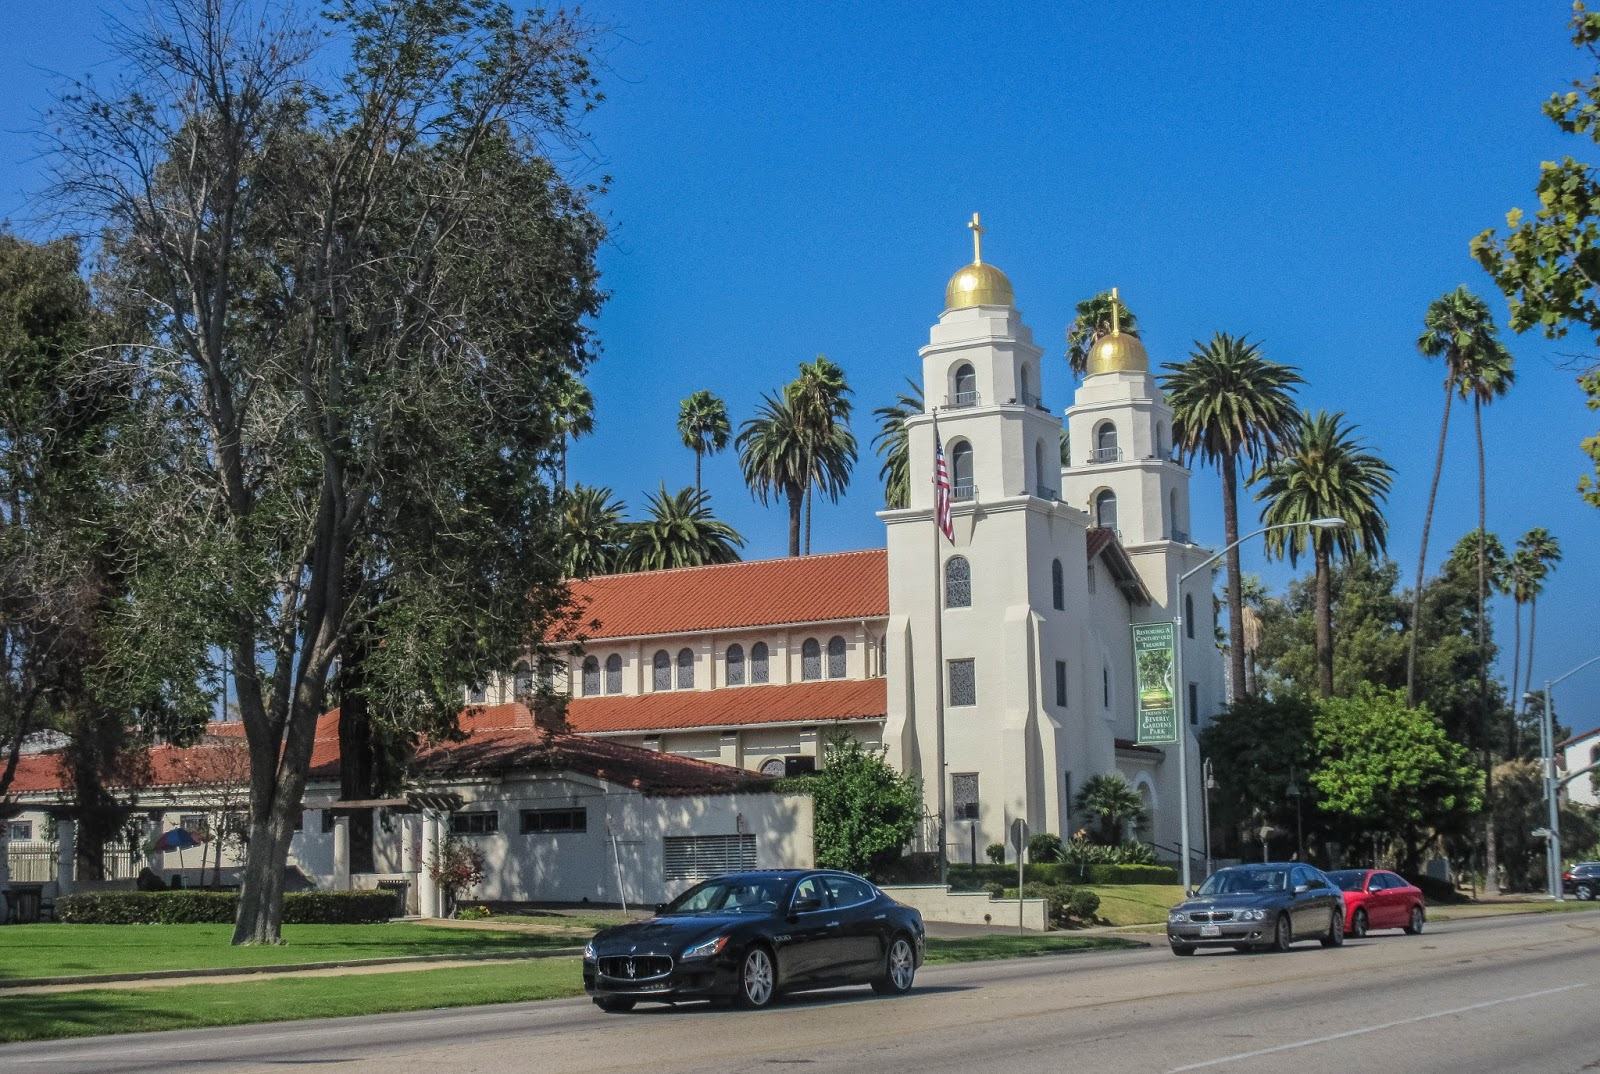 The church on N. Roxbury drive as seen entering Beverly Hills on N. Santa Monica Boulevard